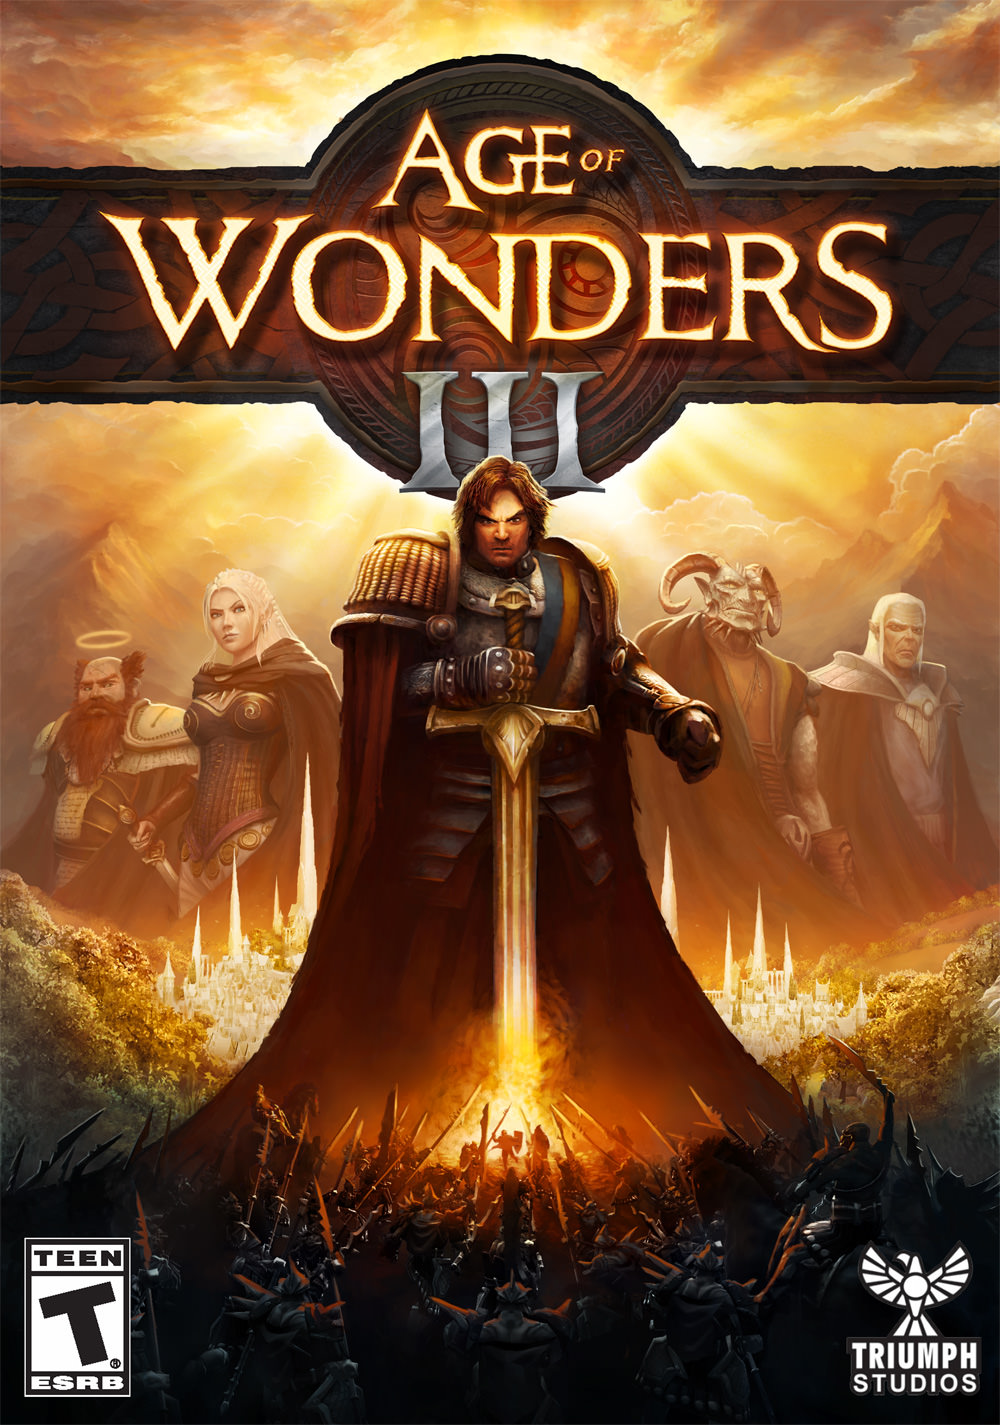 Age of Wonders III picture